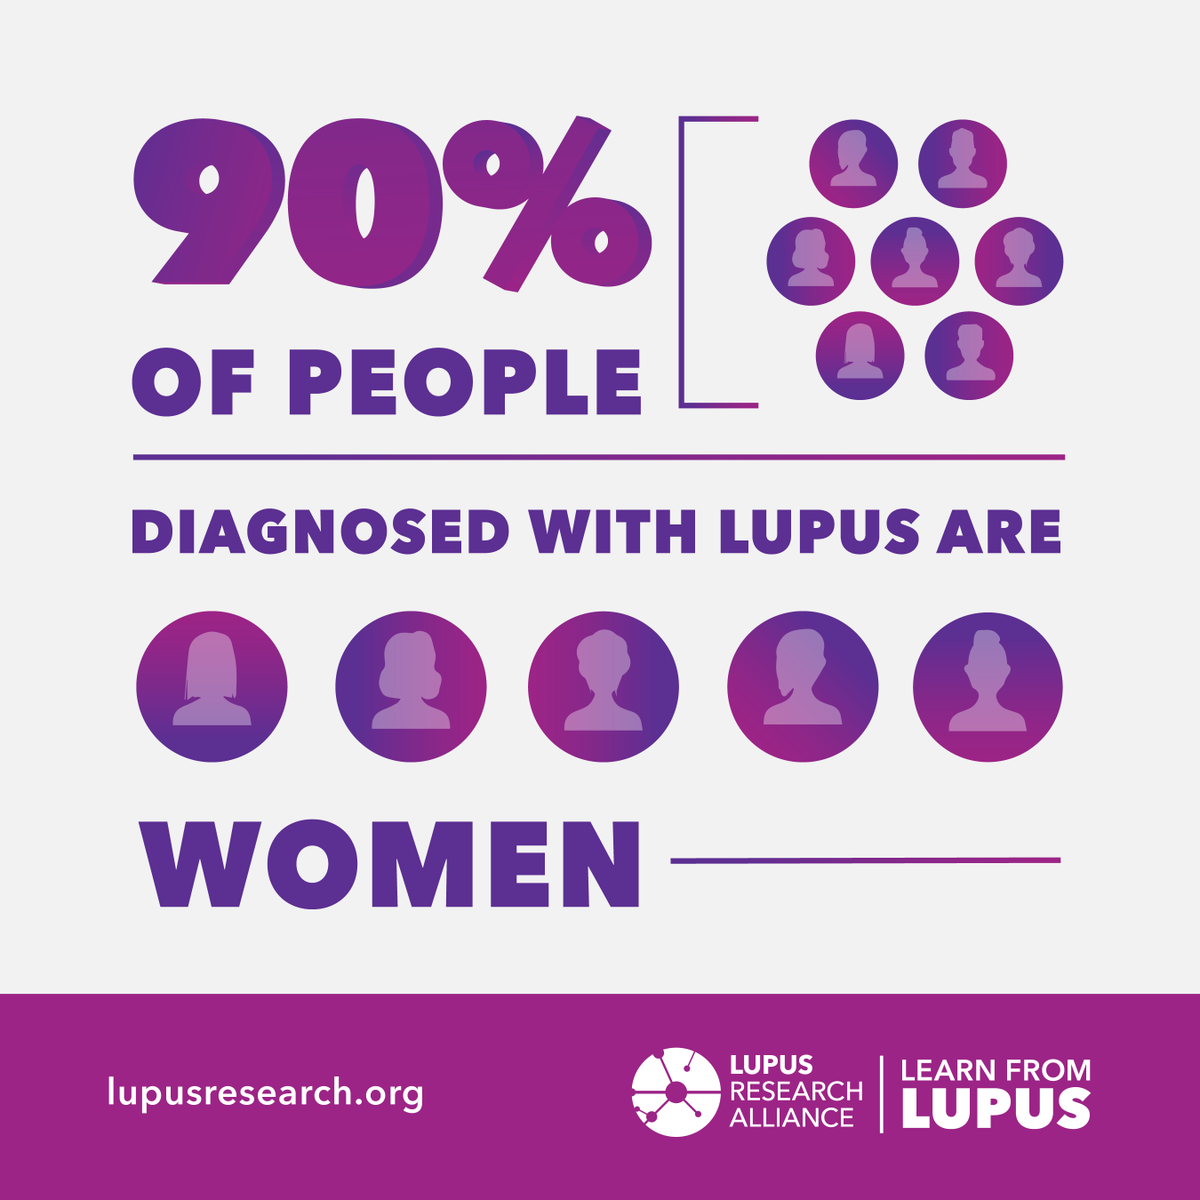 #DidYouKnow – While anyone can get #lupus, the disease most often affects women. In fact, women make up about nine out of ten adults with the disease. #Learnfromlupus  Spread #lupusawareness by sharing this graphic 🙌